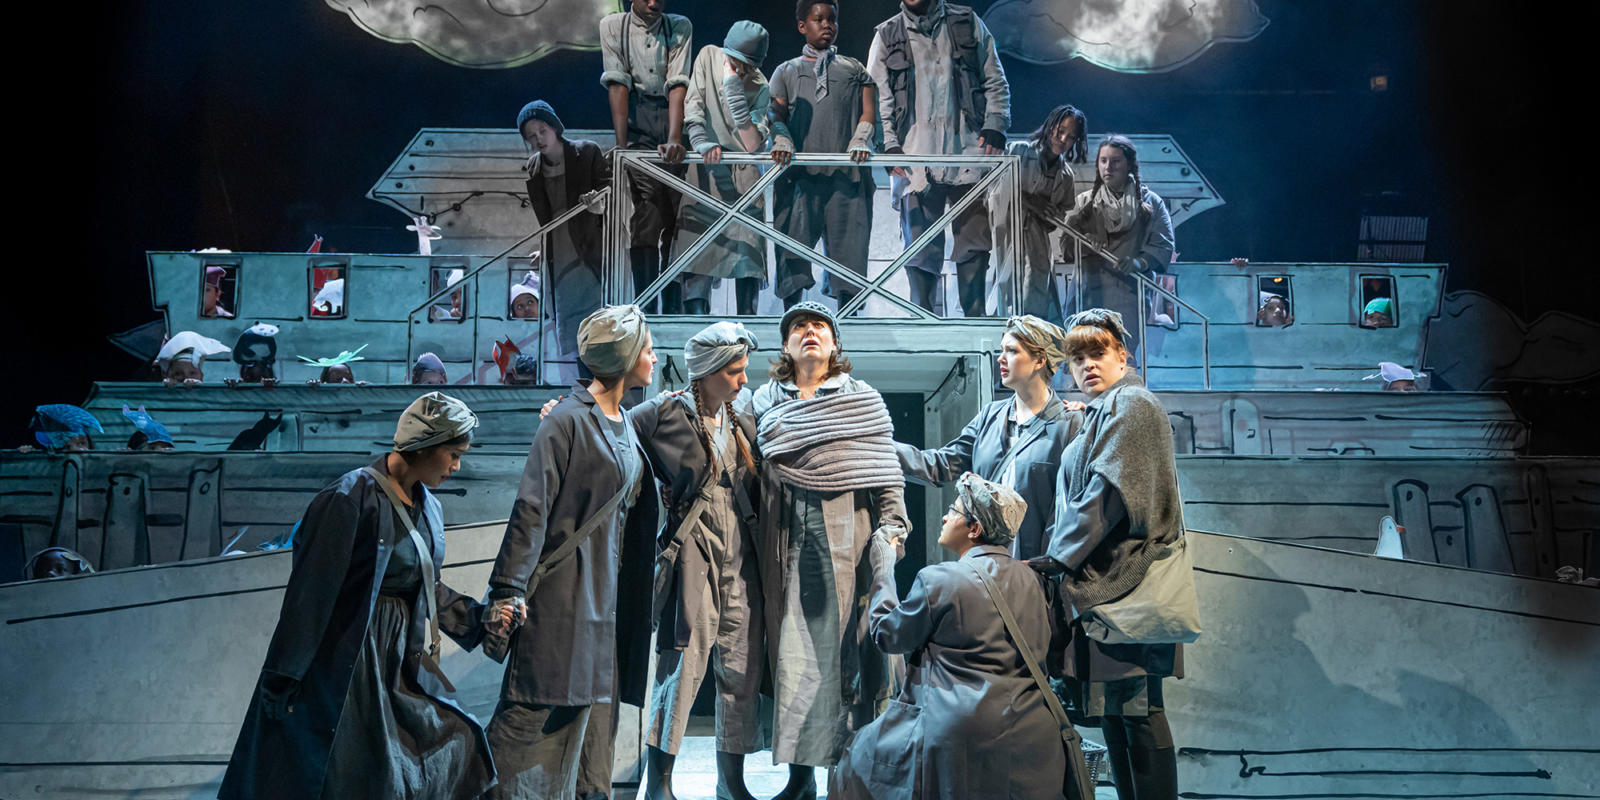 Louise Callinan (Mrs Noah) and Gossips in Noye's Fludde at Theatre Royal Stratford East